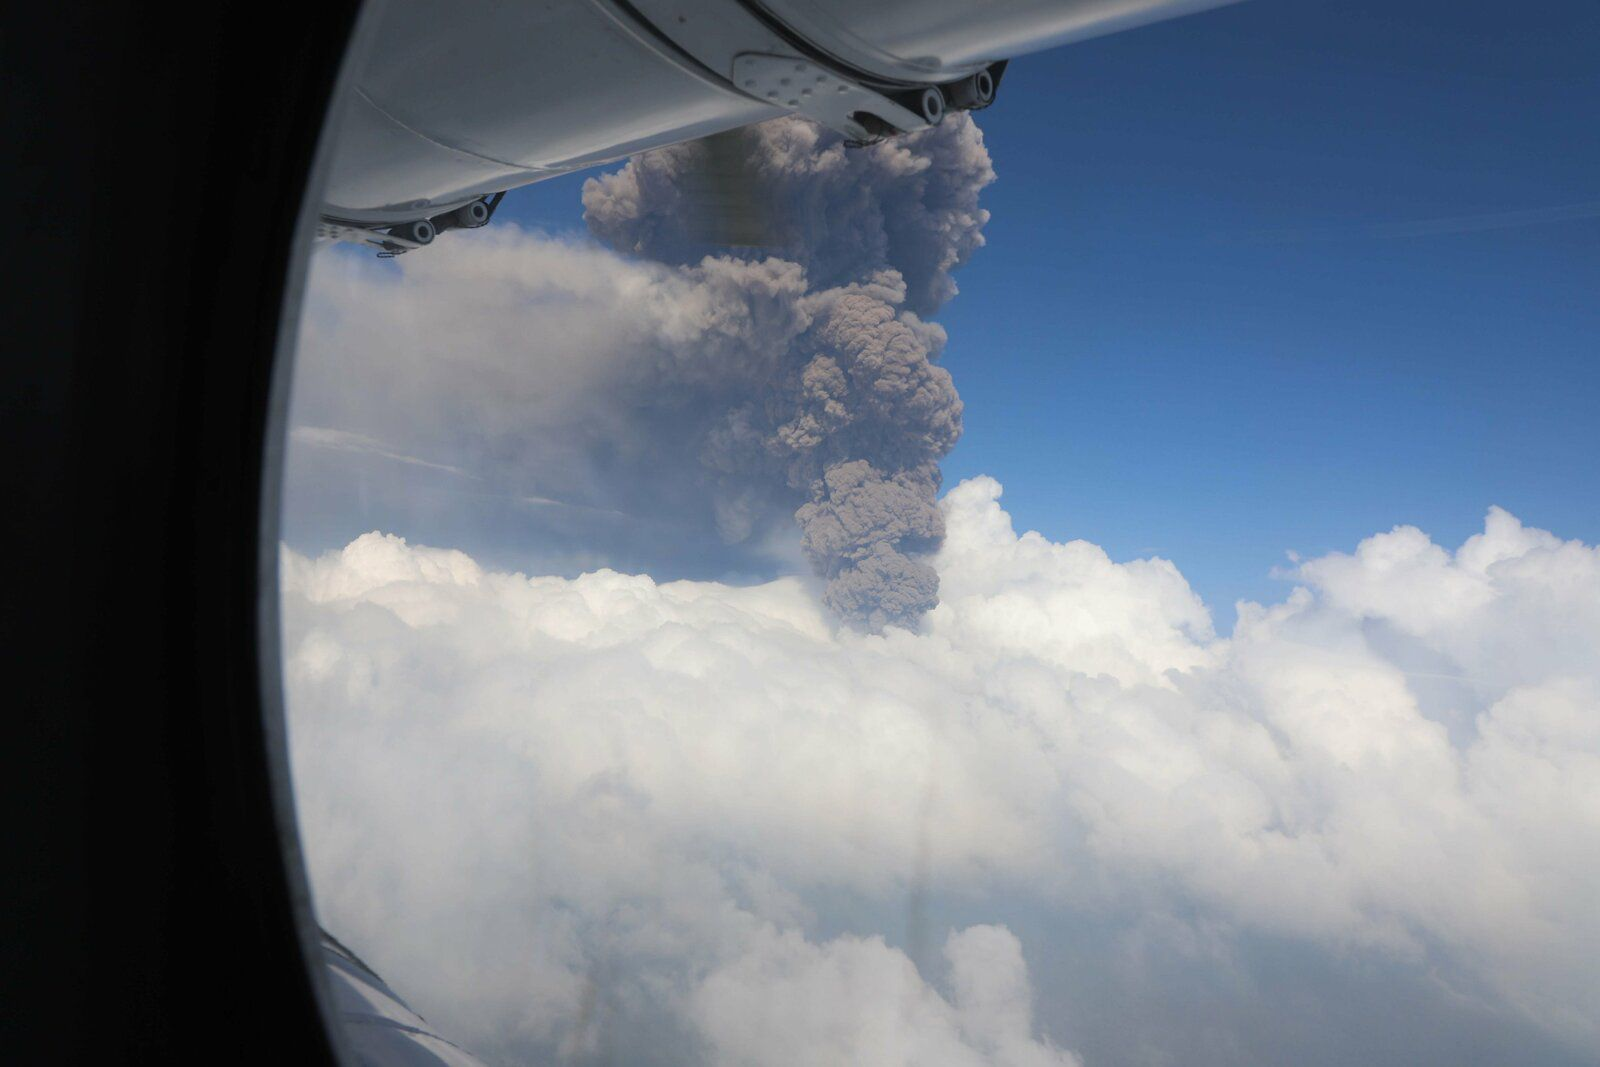 Nyiragongo - overflight by Monusco - ash plume emitted during the crater collapse on May 25, 2021